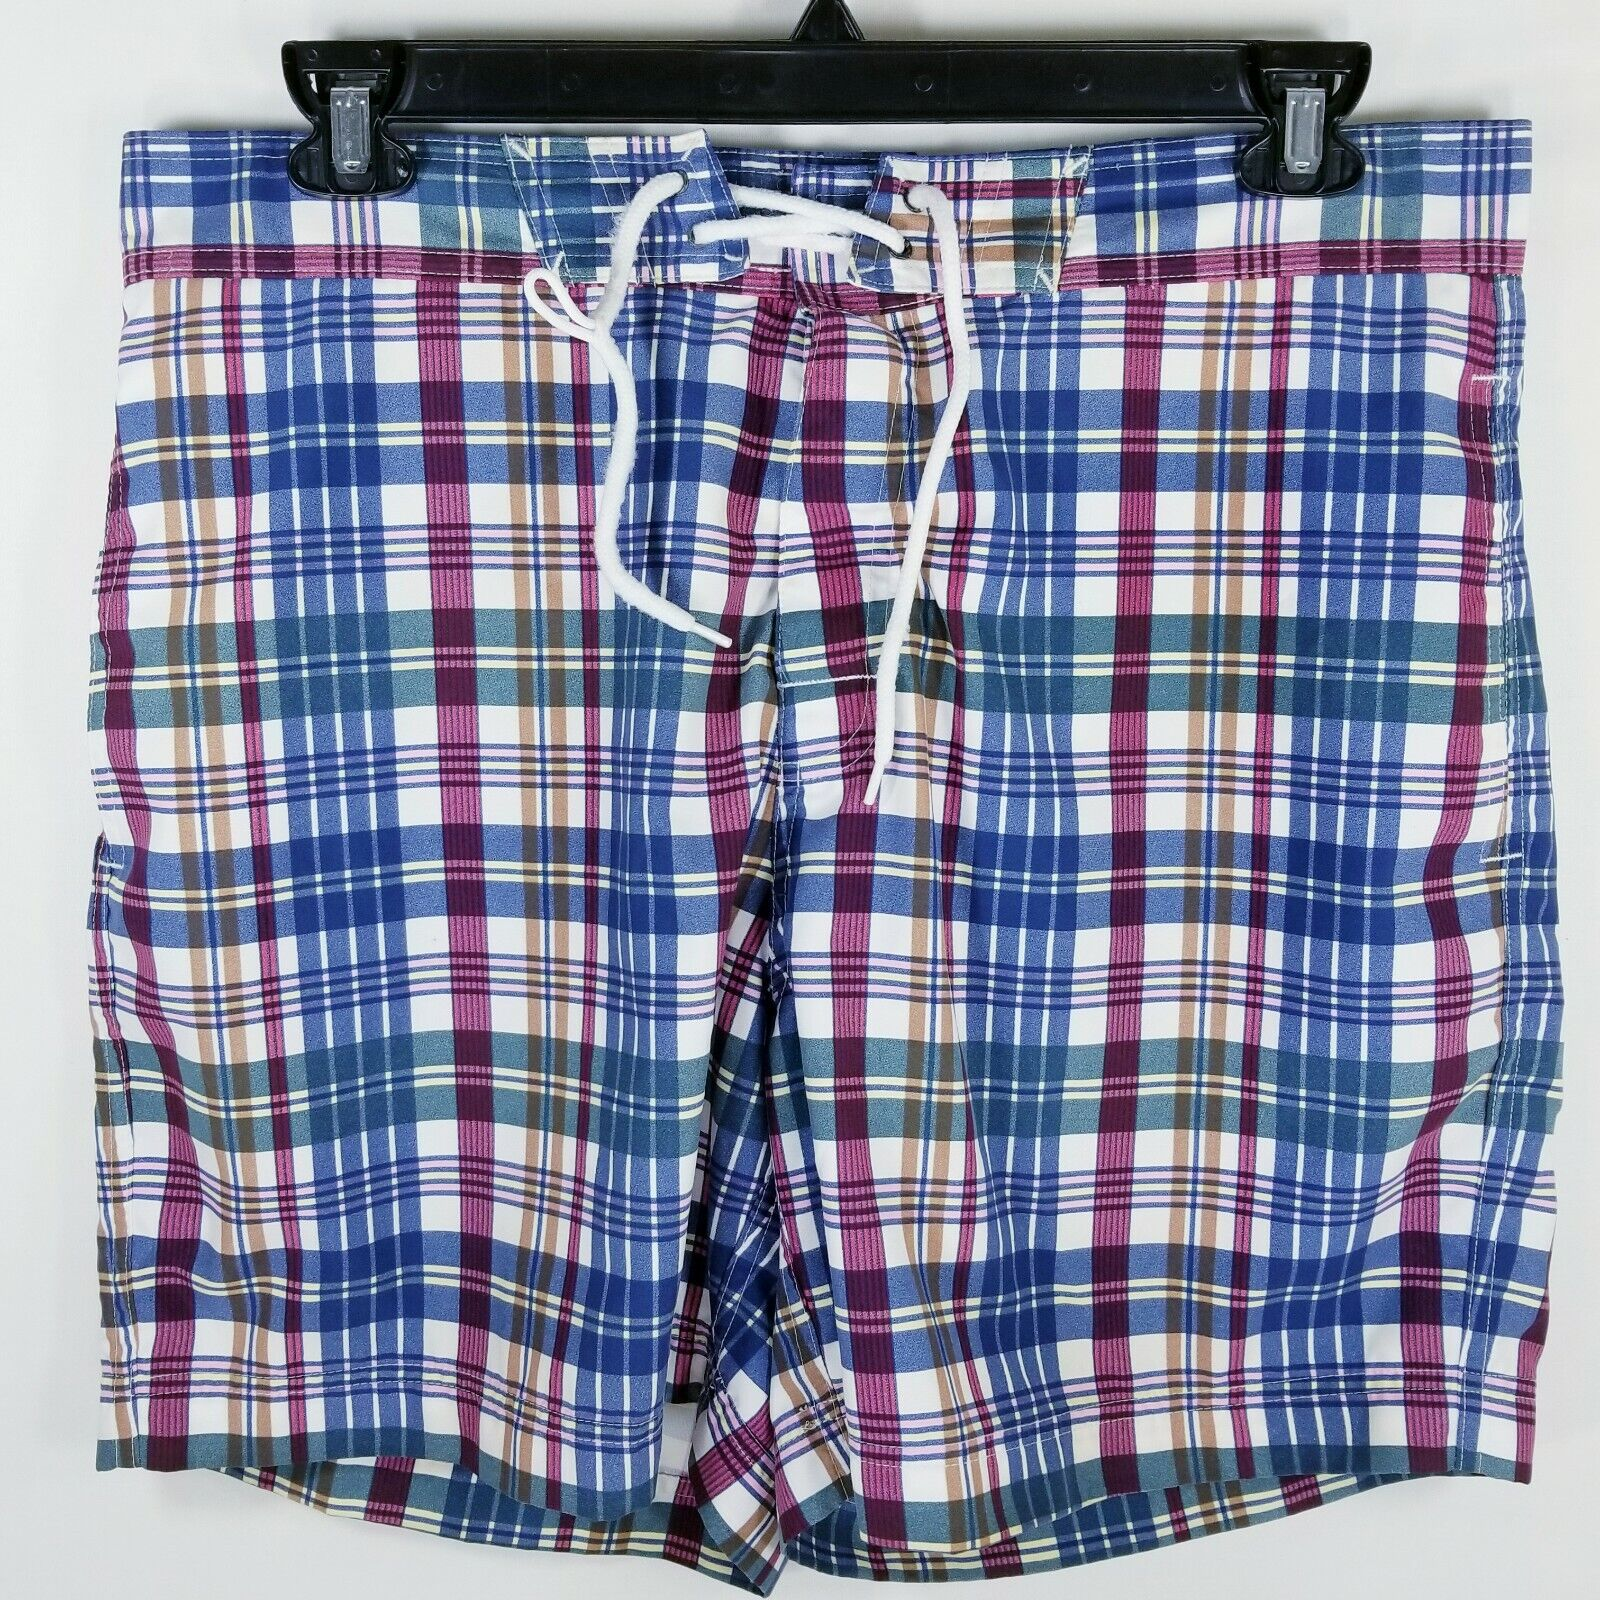 Brooks Bredhers 346 men's large swimming trunks laced Multicolord plaid